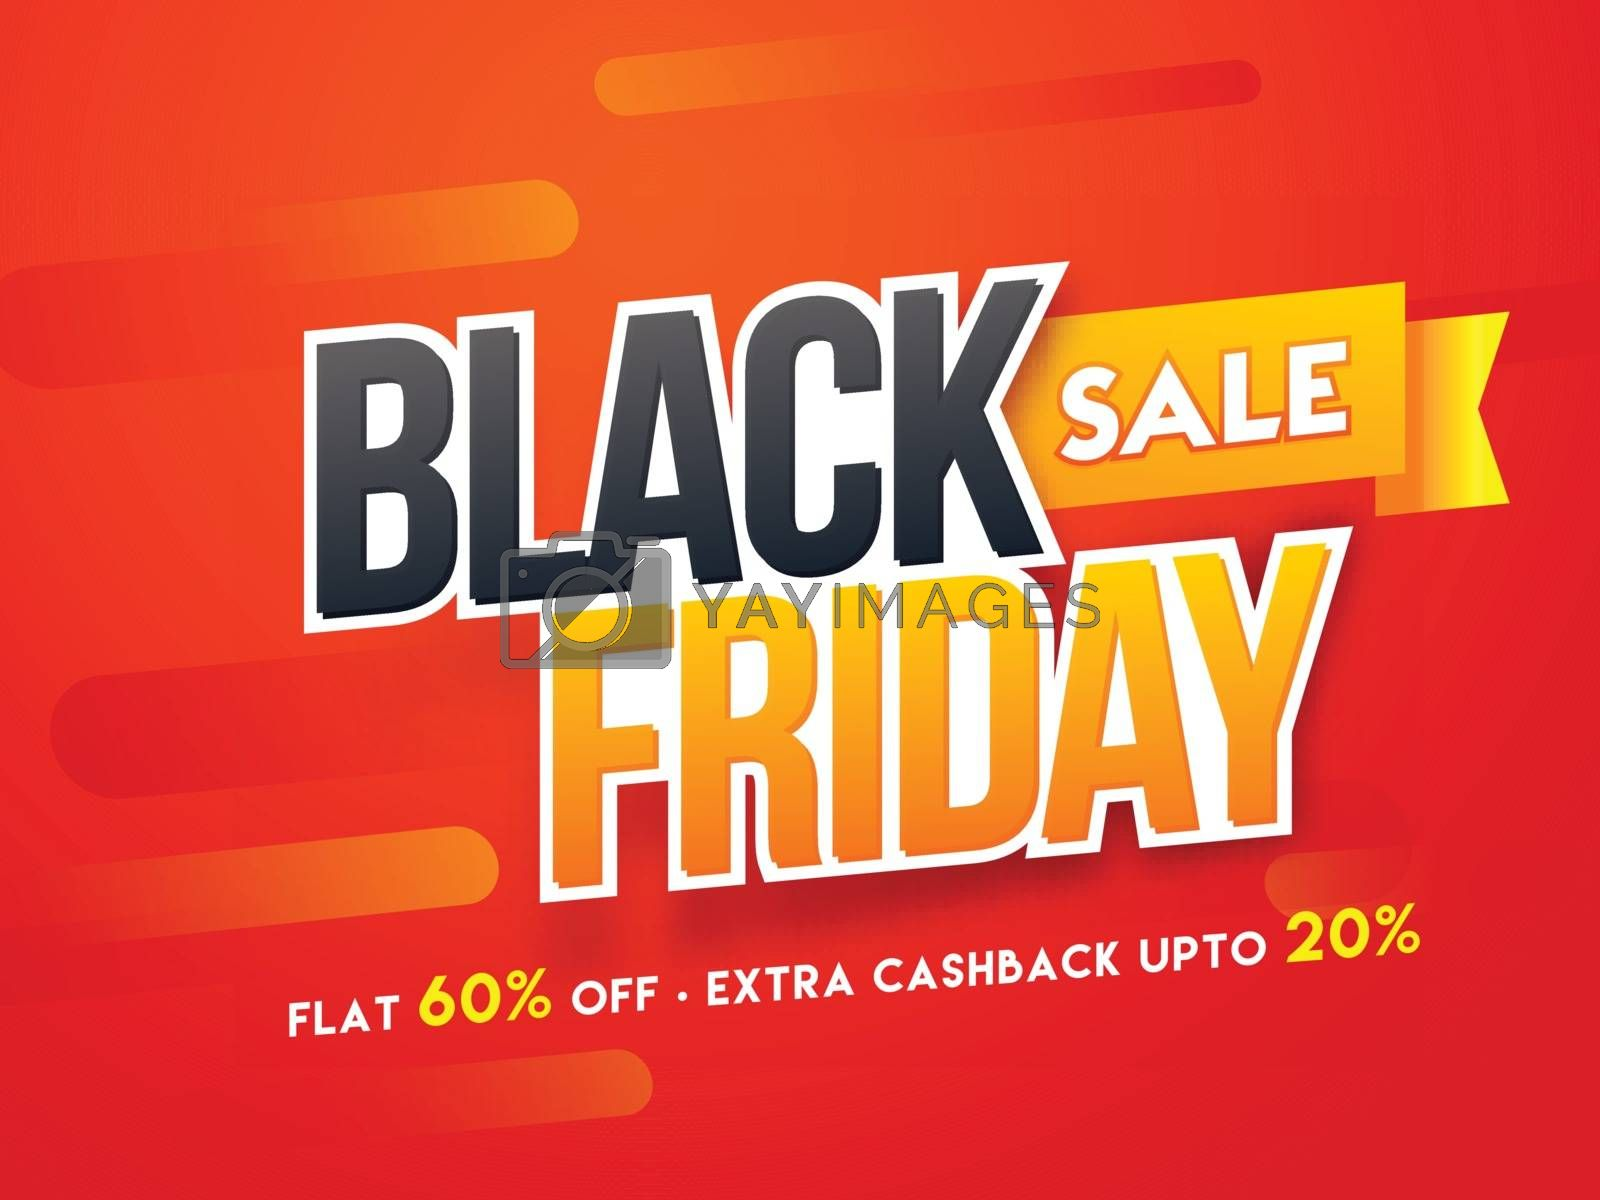 Sticker style text Black Friday with flat 60% and extra 20% discount offer on glossy red background. Advertising poster or template design.